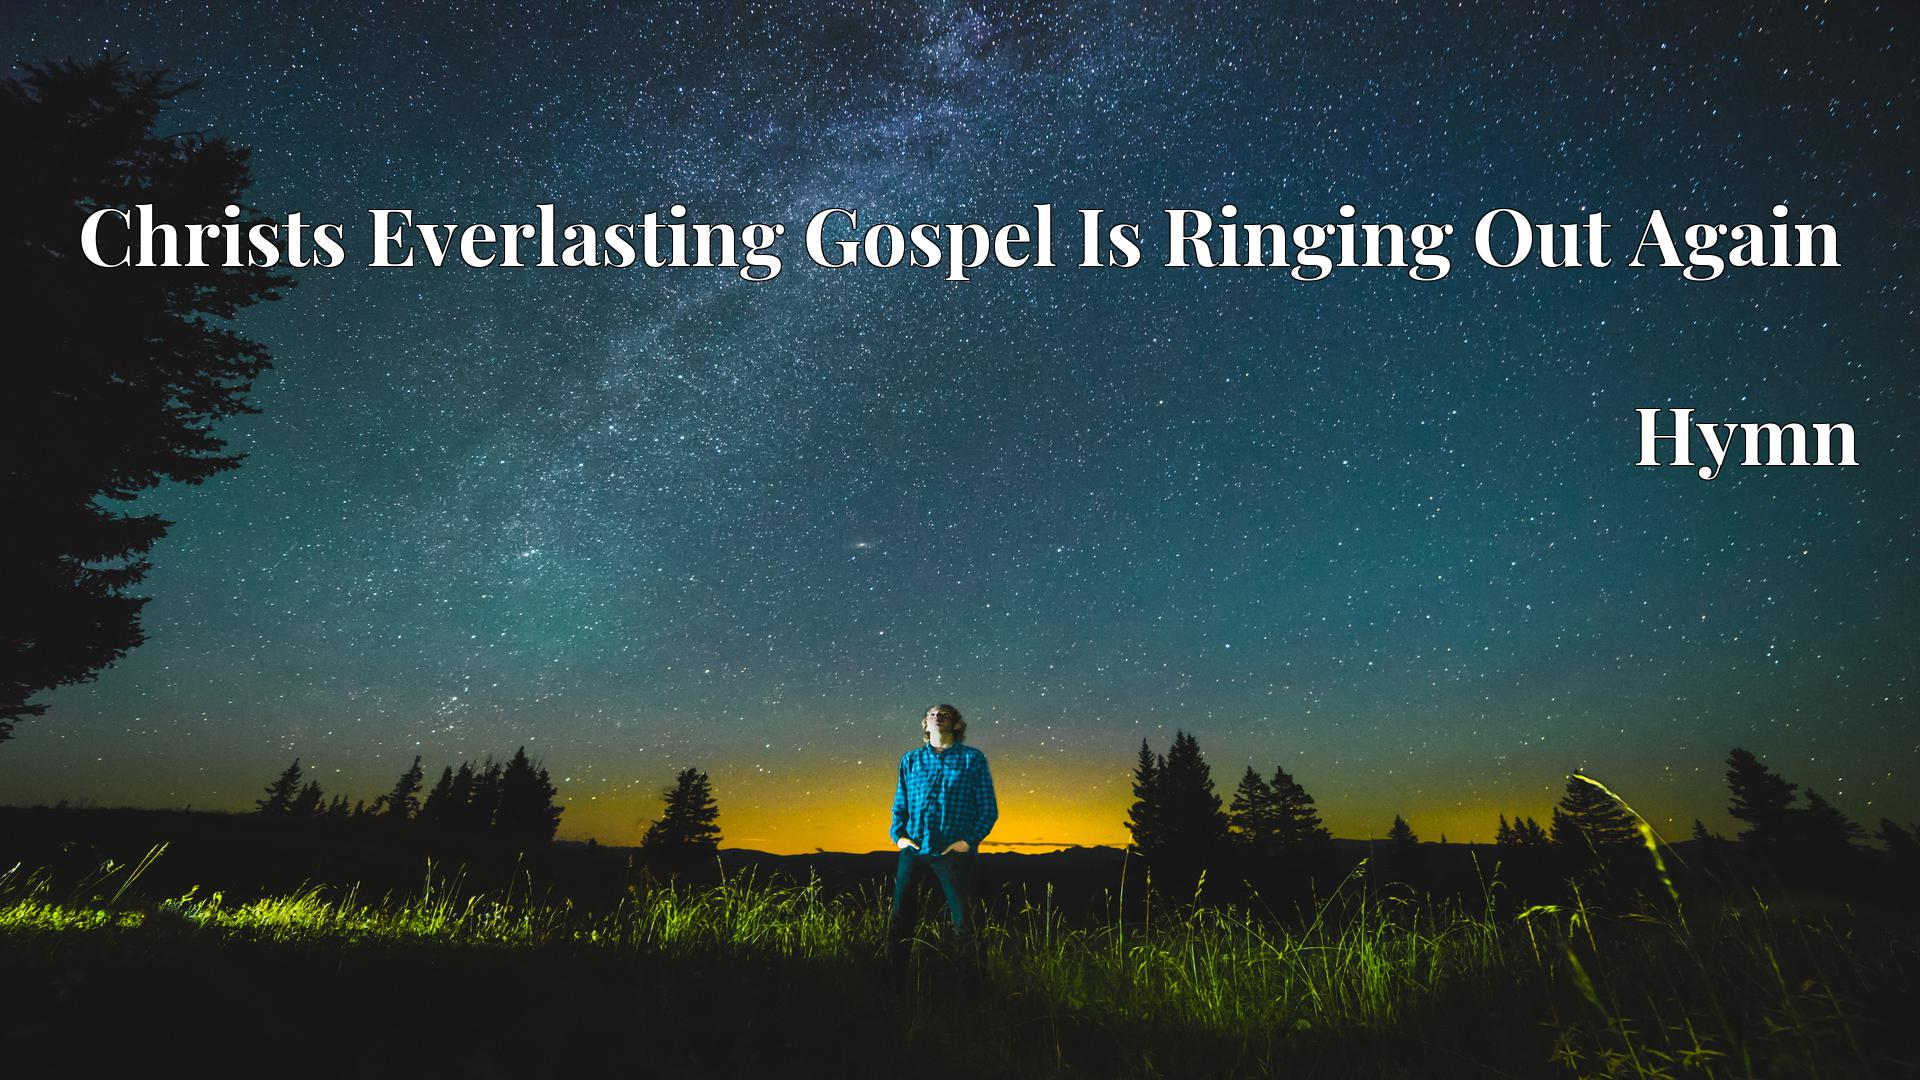 Christs Everlasting Gospel Is Ringing Out Again - Hymn